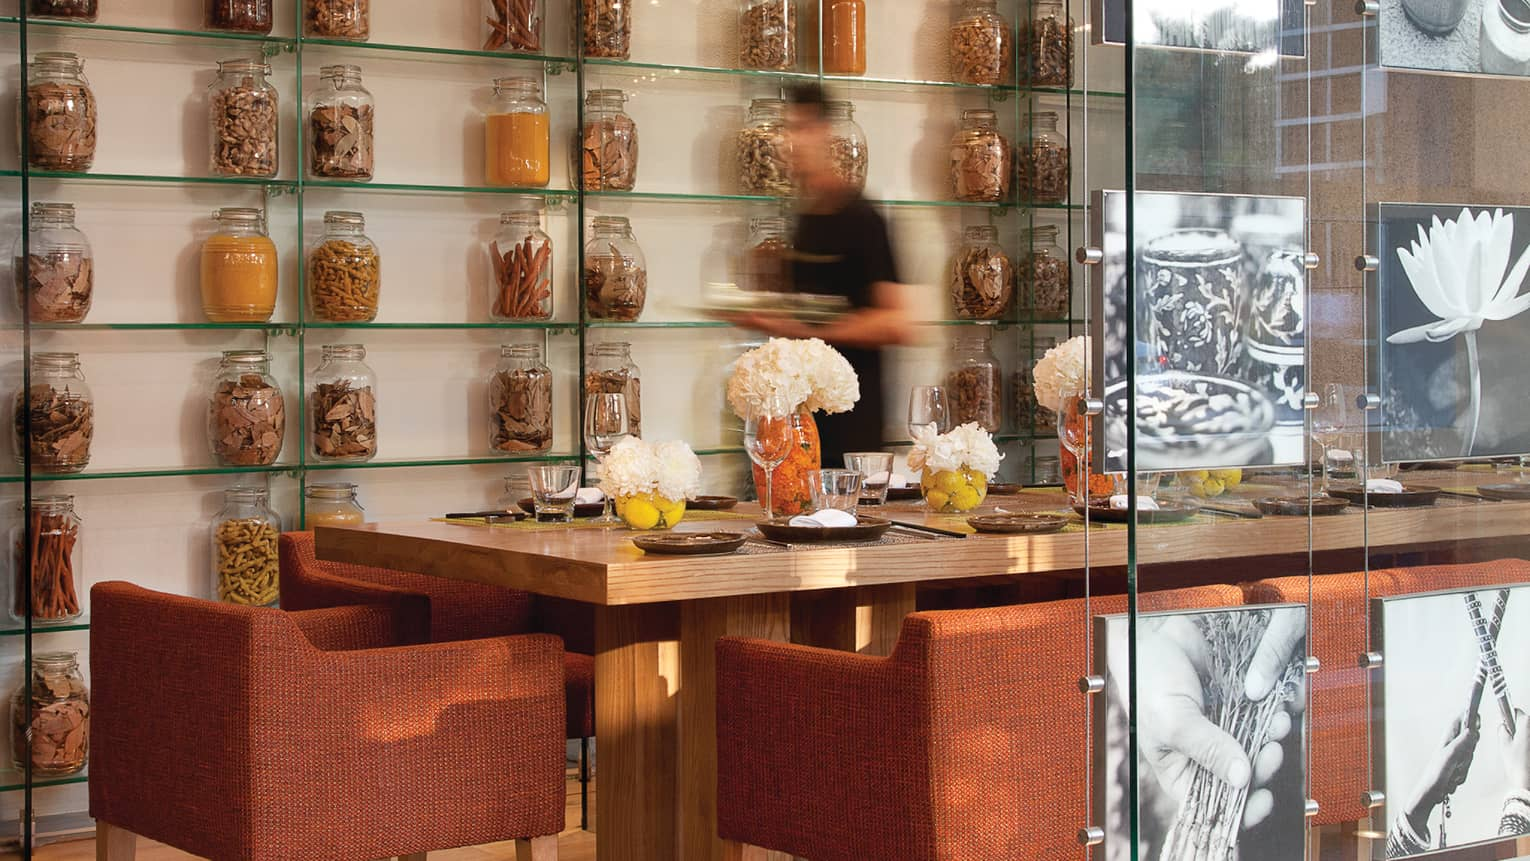 Blurry image of server walking quickly past table, wall with large glass spice jars